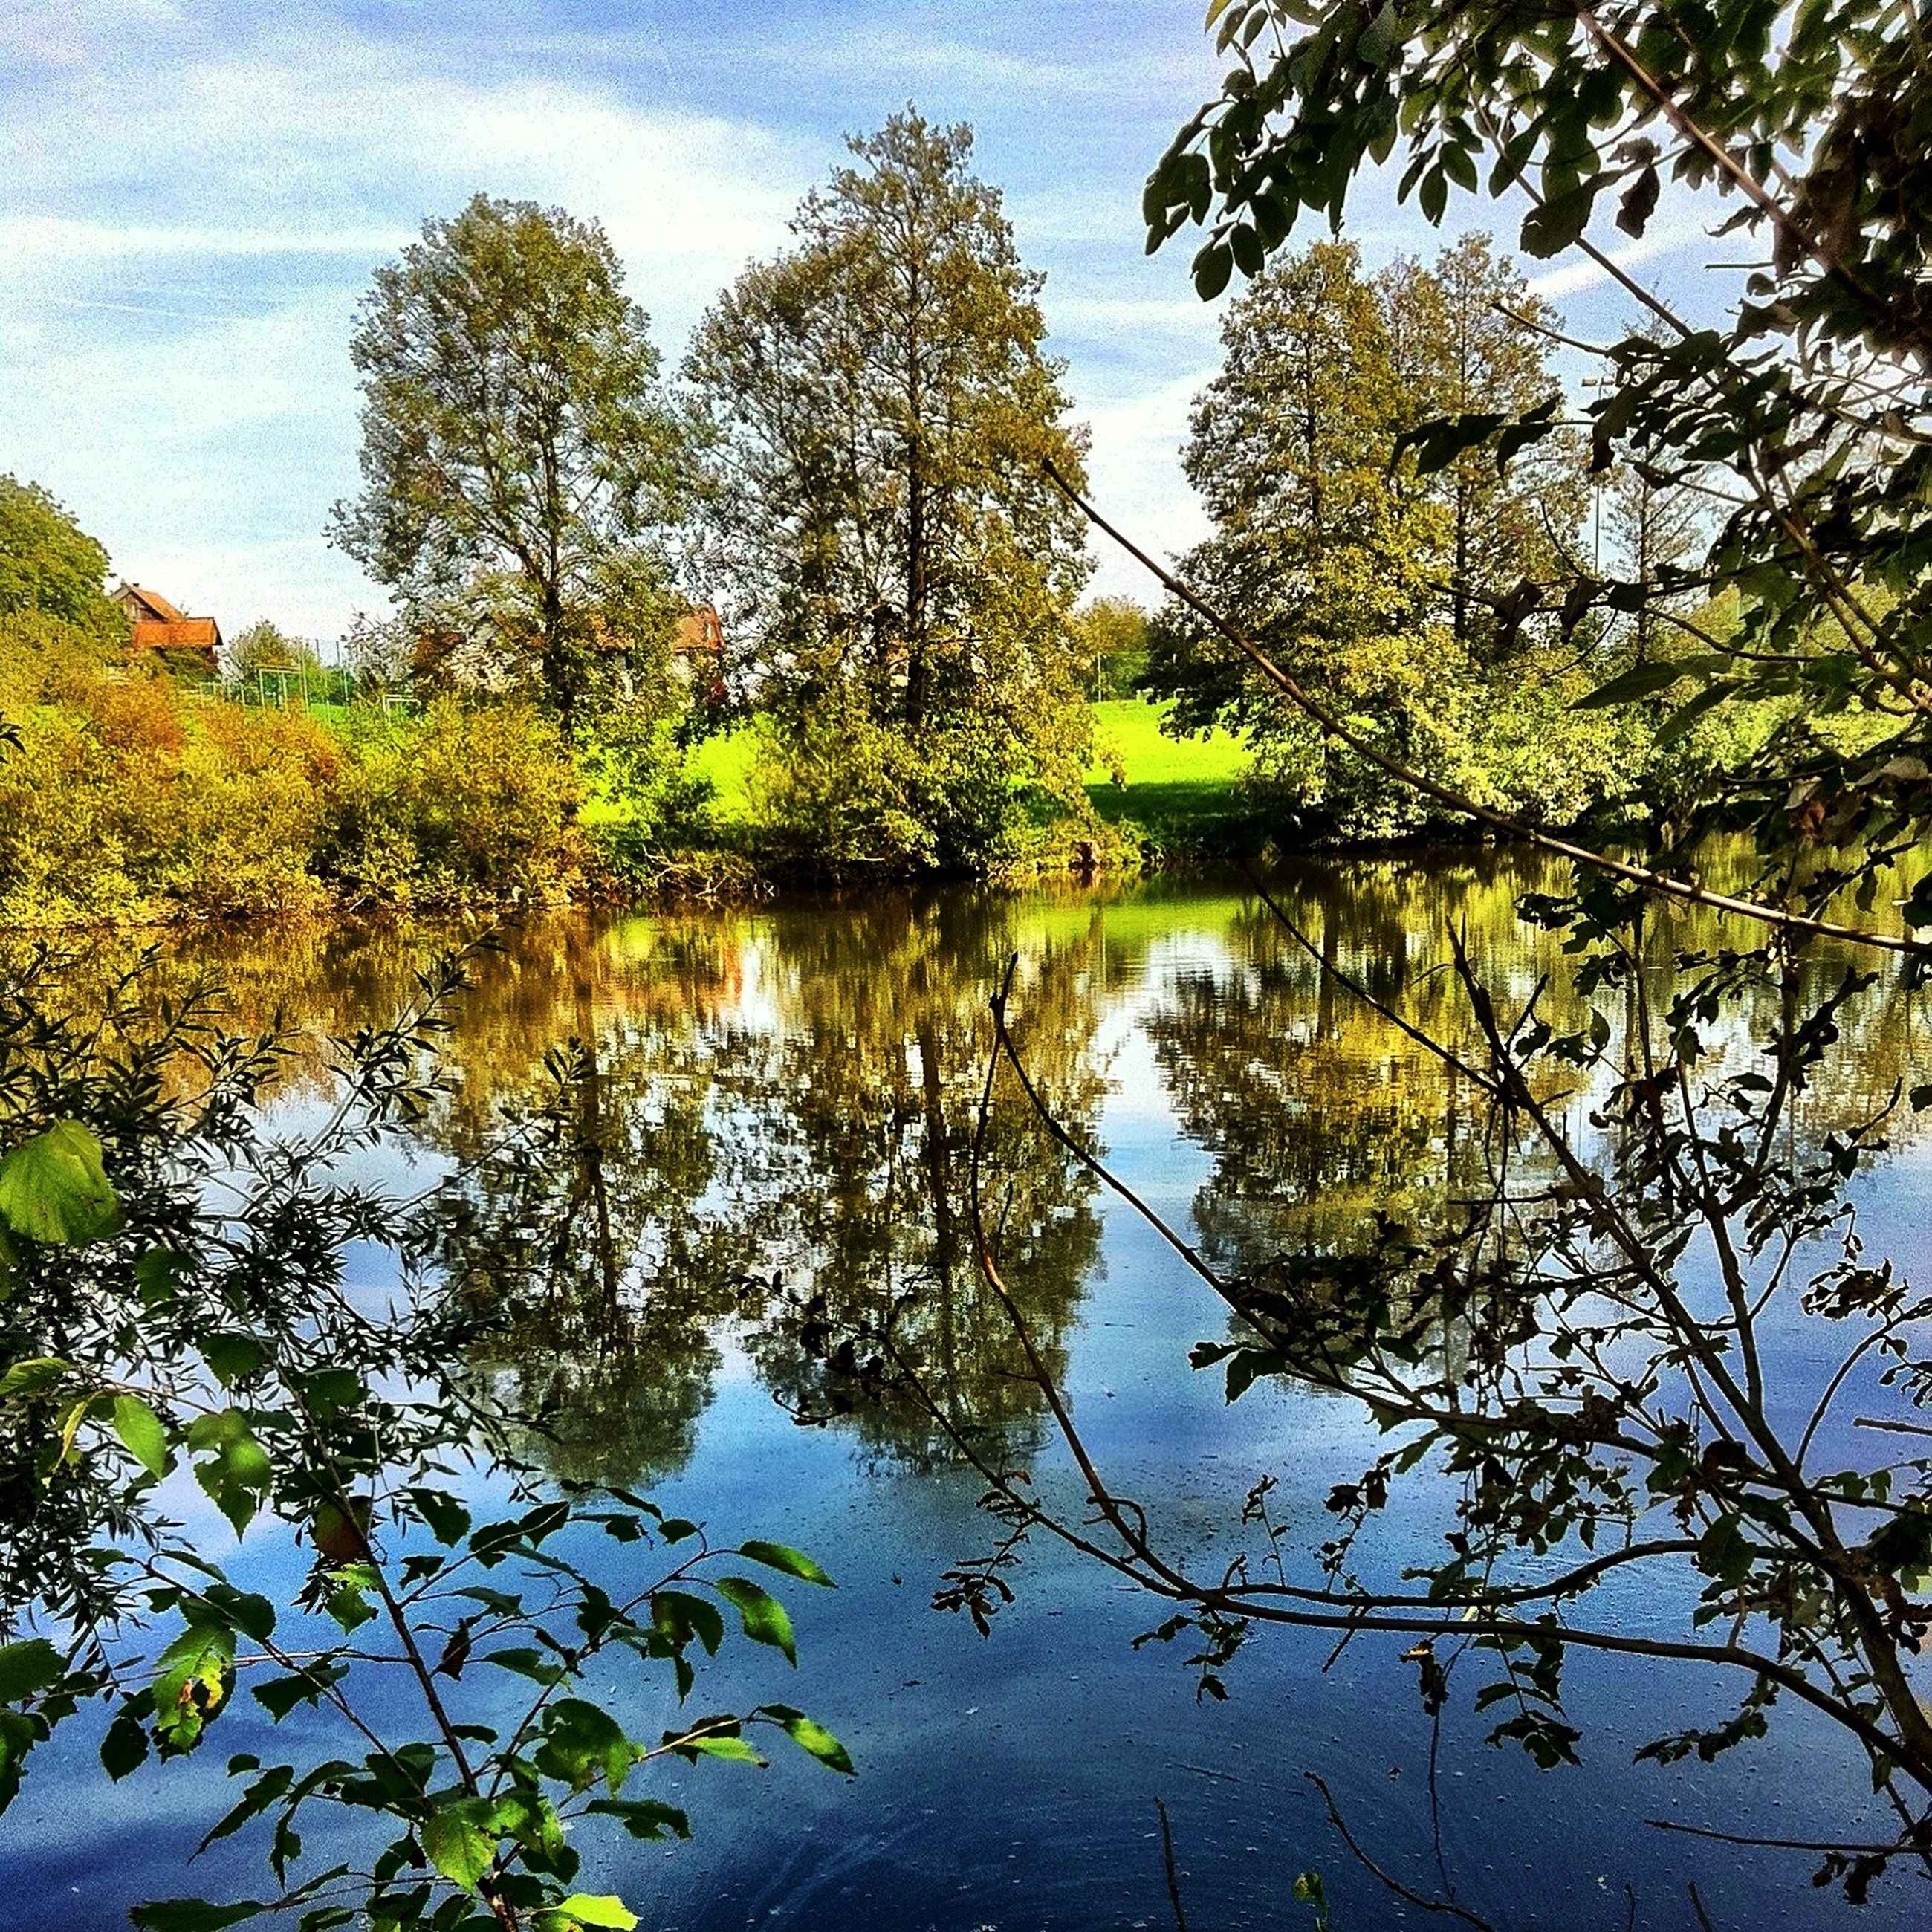 reflection, tree, water, lake, tranquility, sky, tranquil scene, beauty in nature, scenics, nature, branch, standing water, waterfront, growth, leaf, idyllic, day, outdoors, green color, autumn